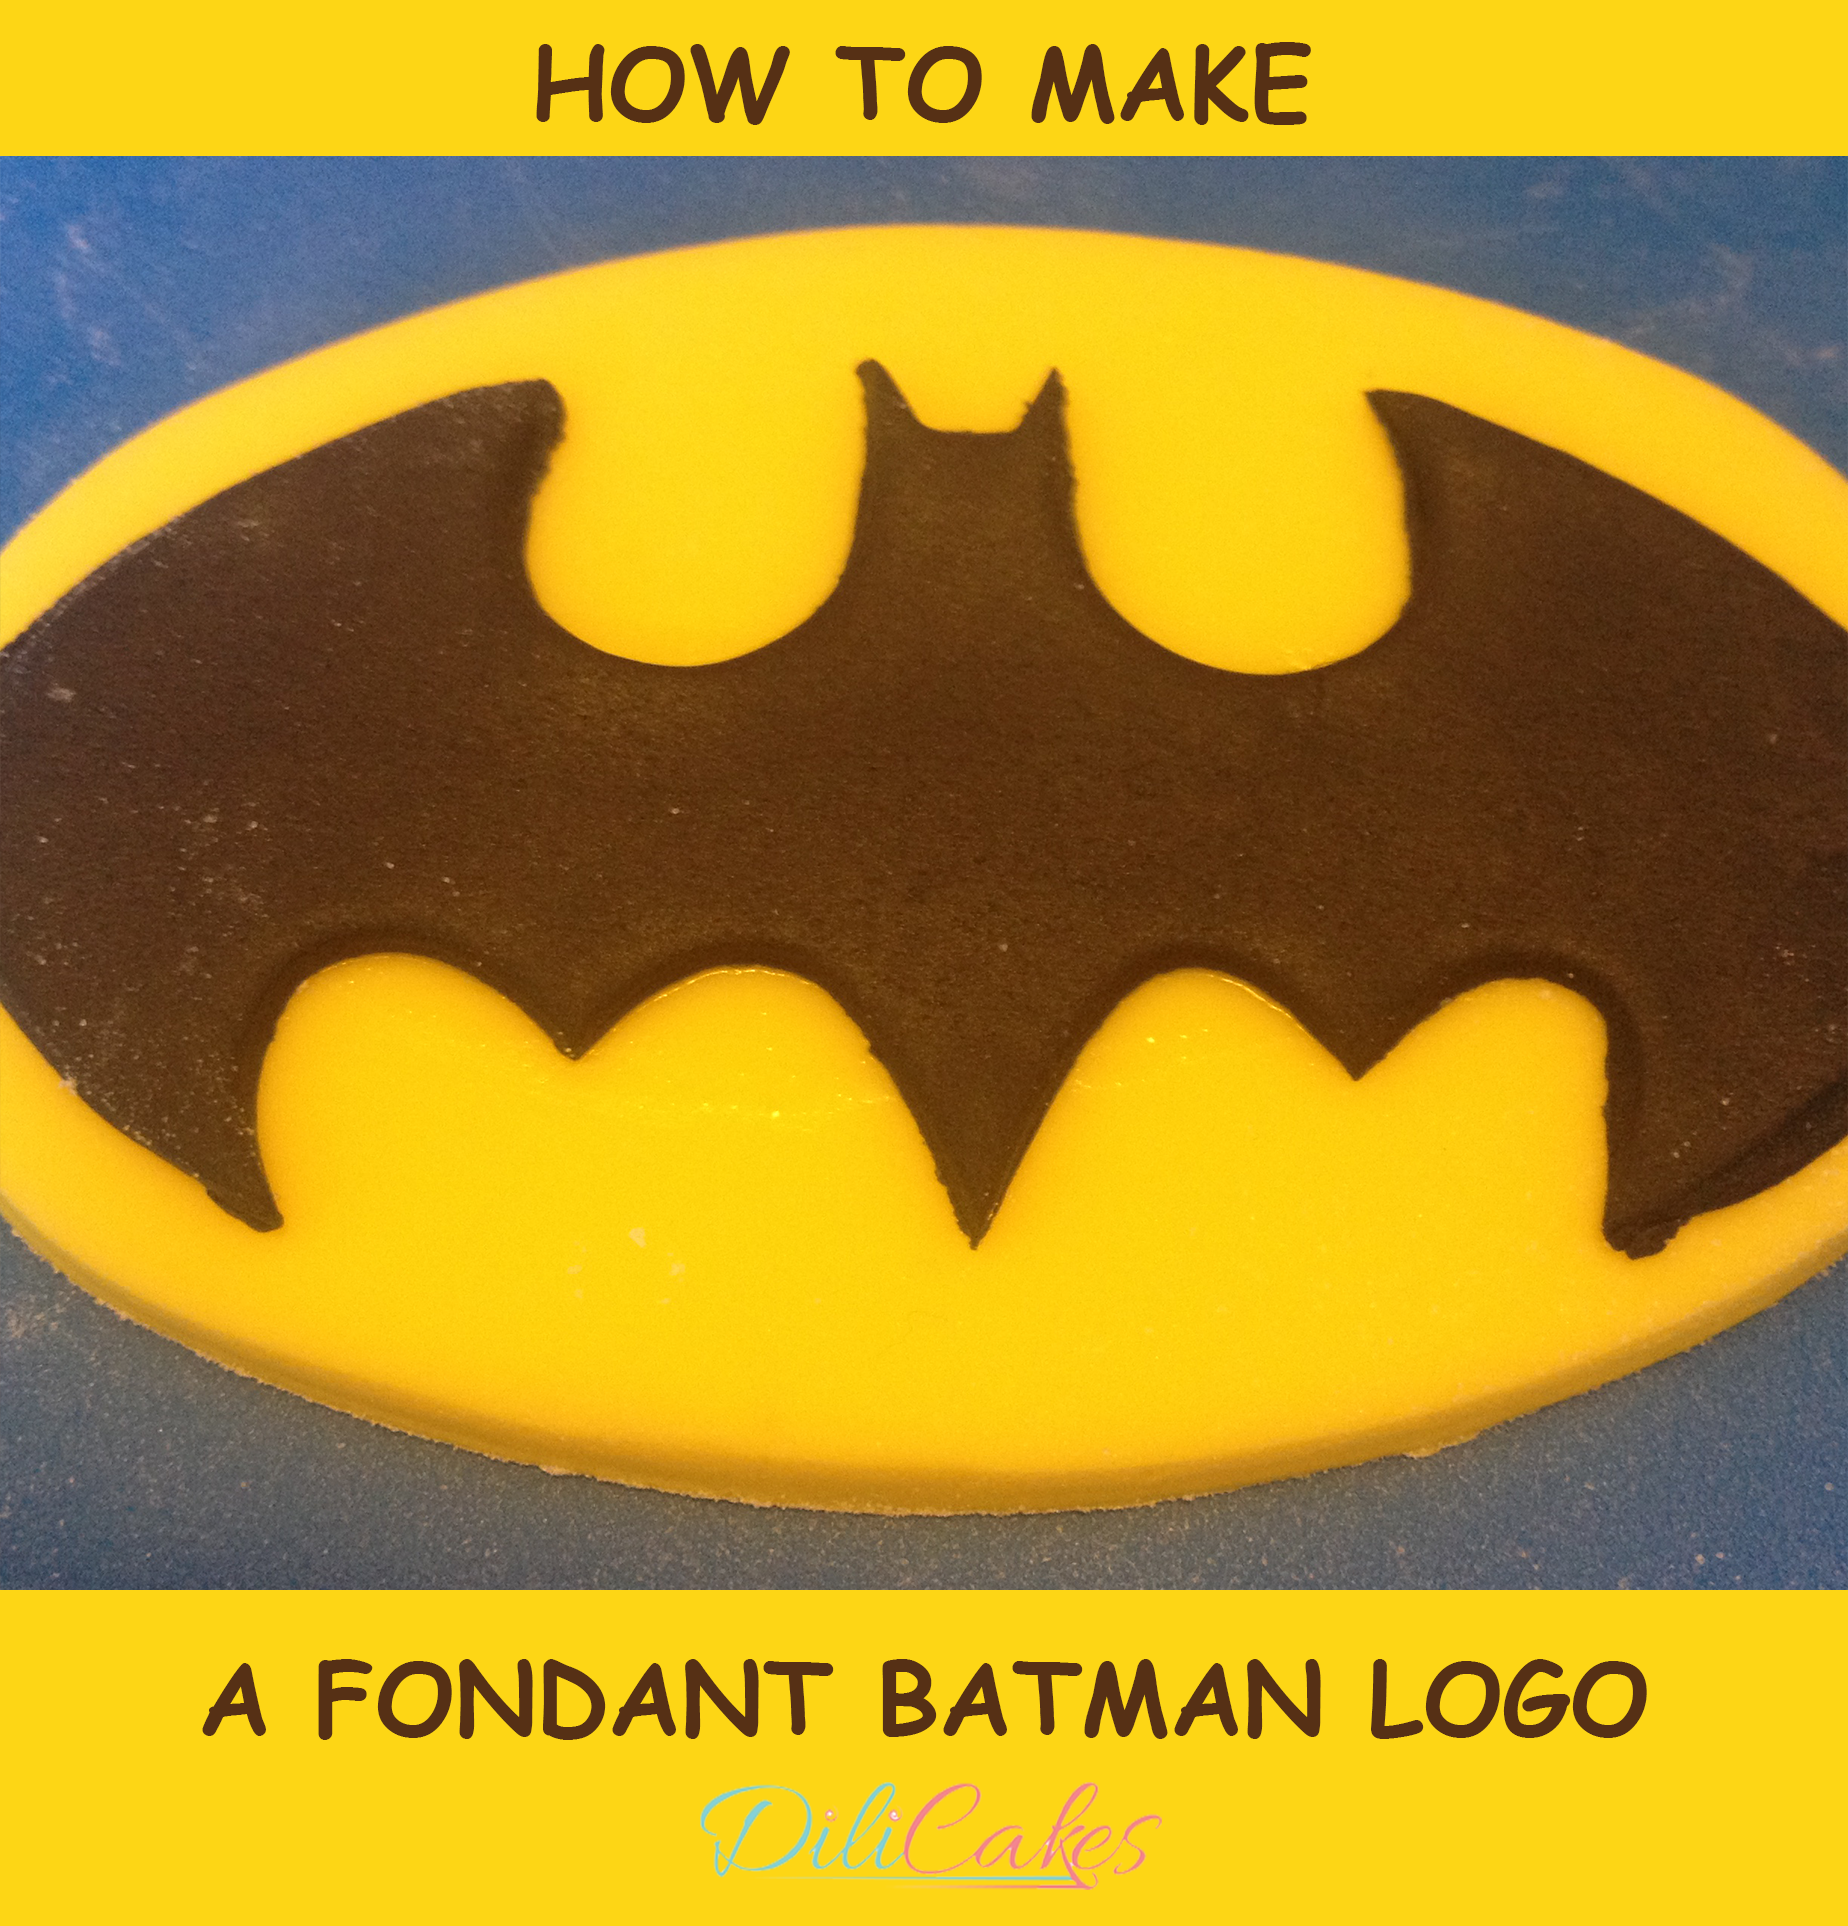 batman logo cake template - how to make a fondant batman logo for your cakes and